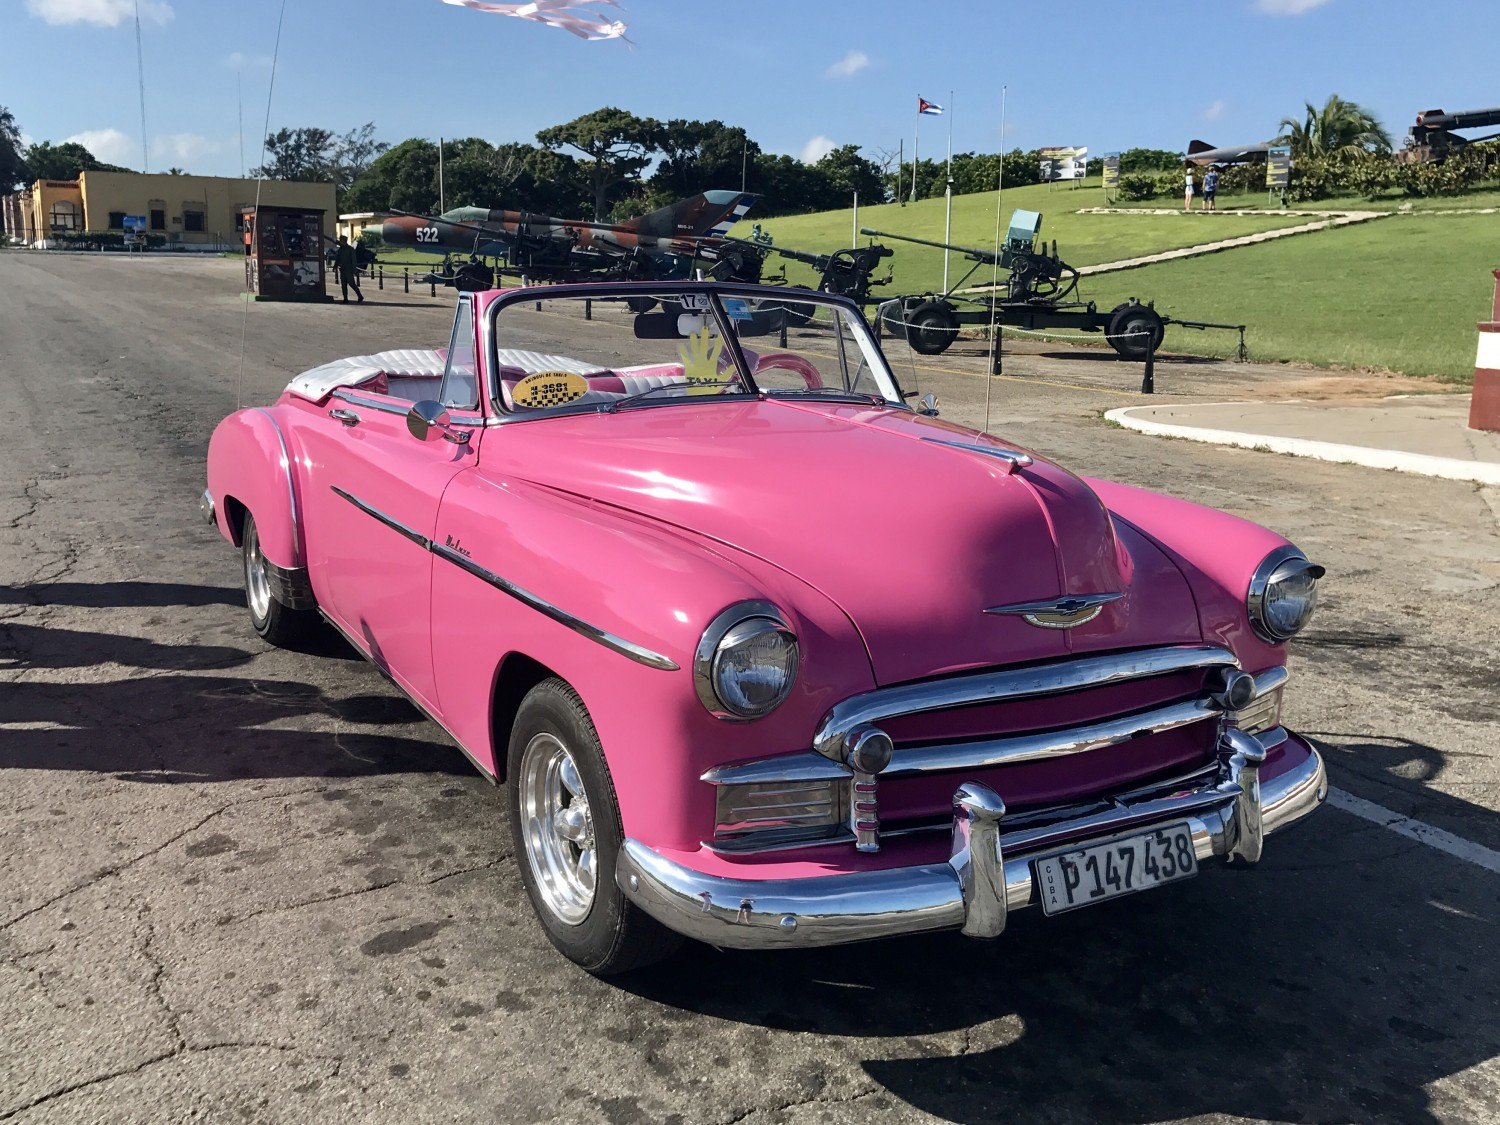 You can't go to Havana without taking a car tour in a classic car. Read our guide to the best things to do in Havana